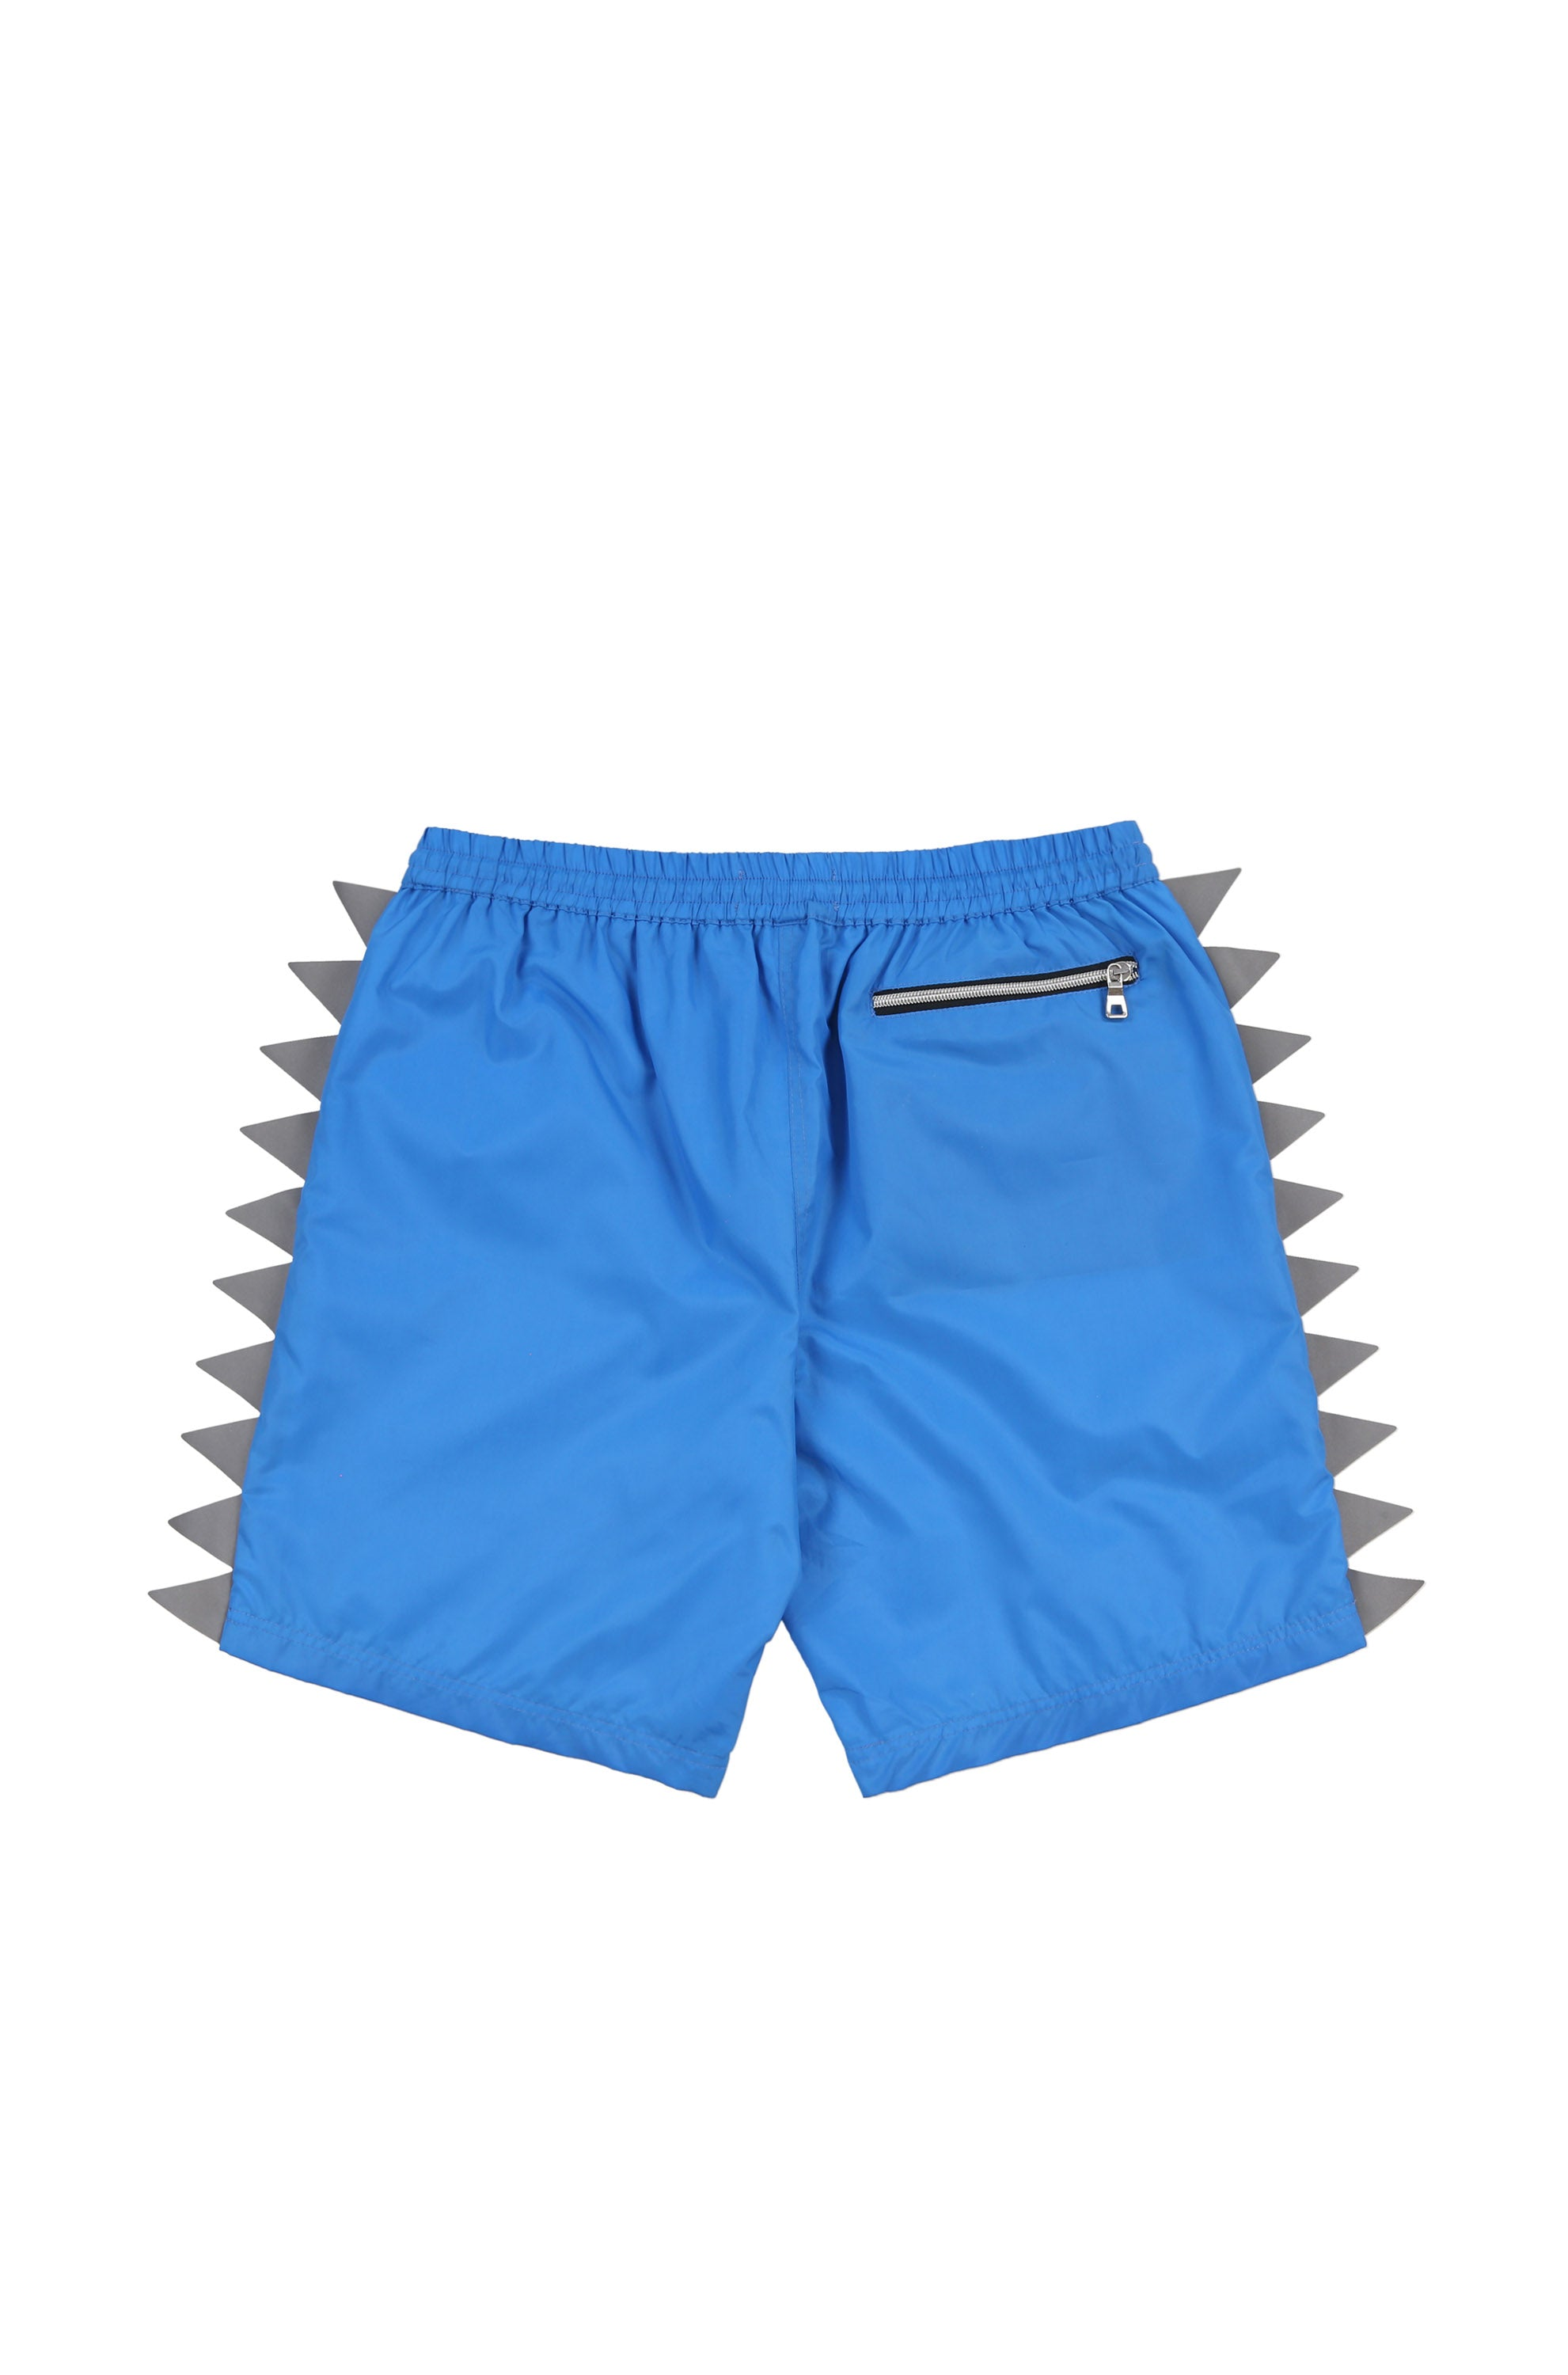 Oyster Pennant Flag Short (Neon Blue)